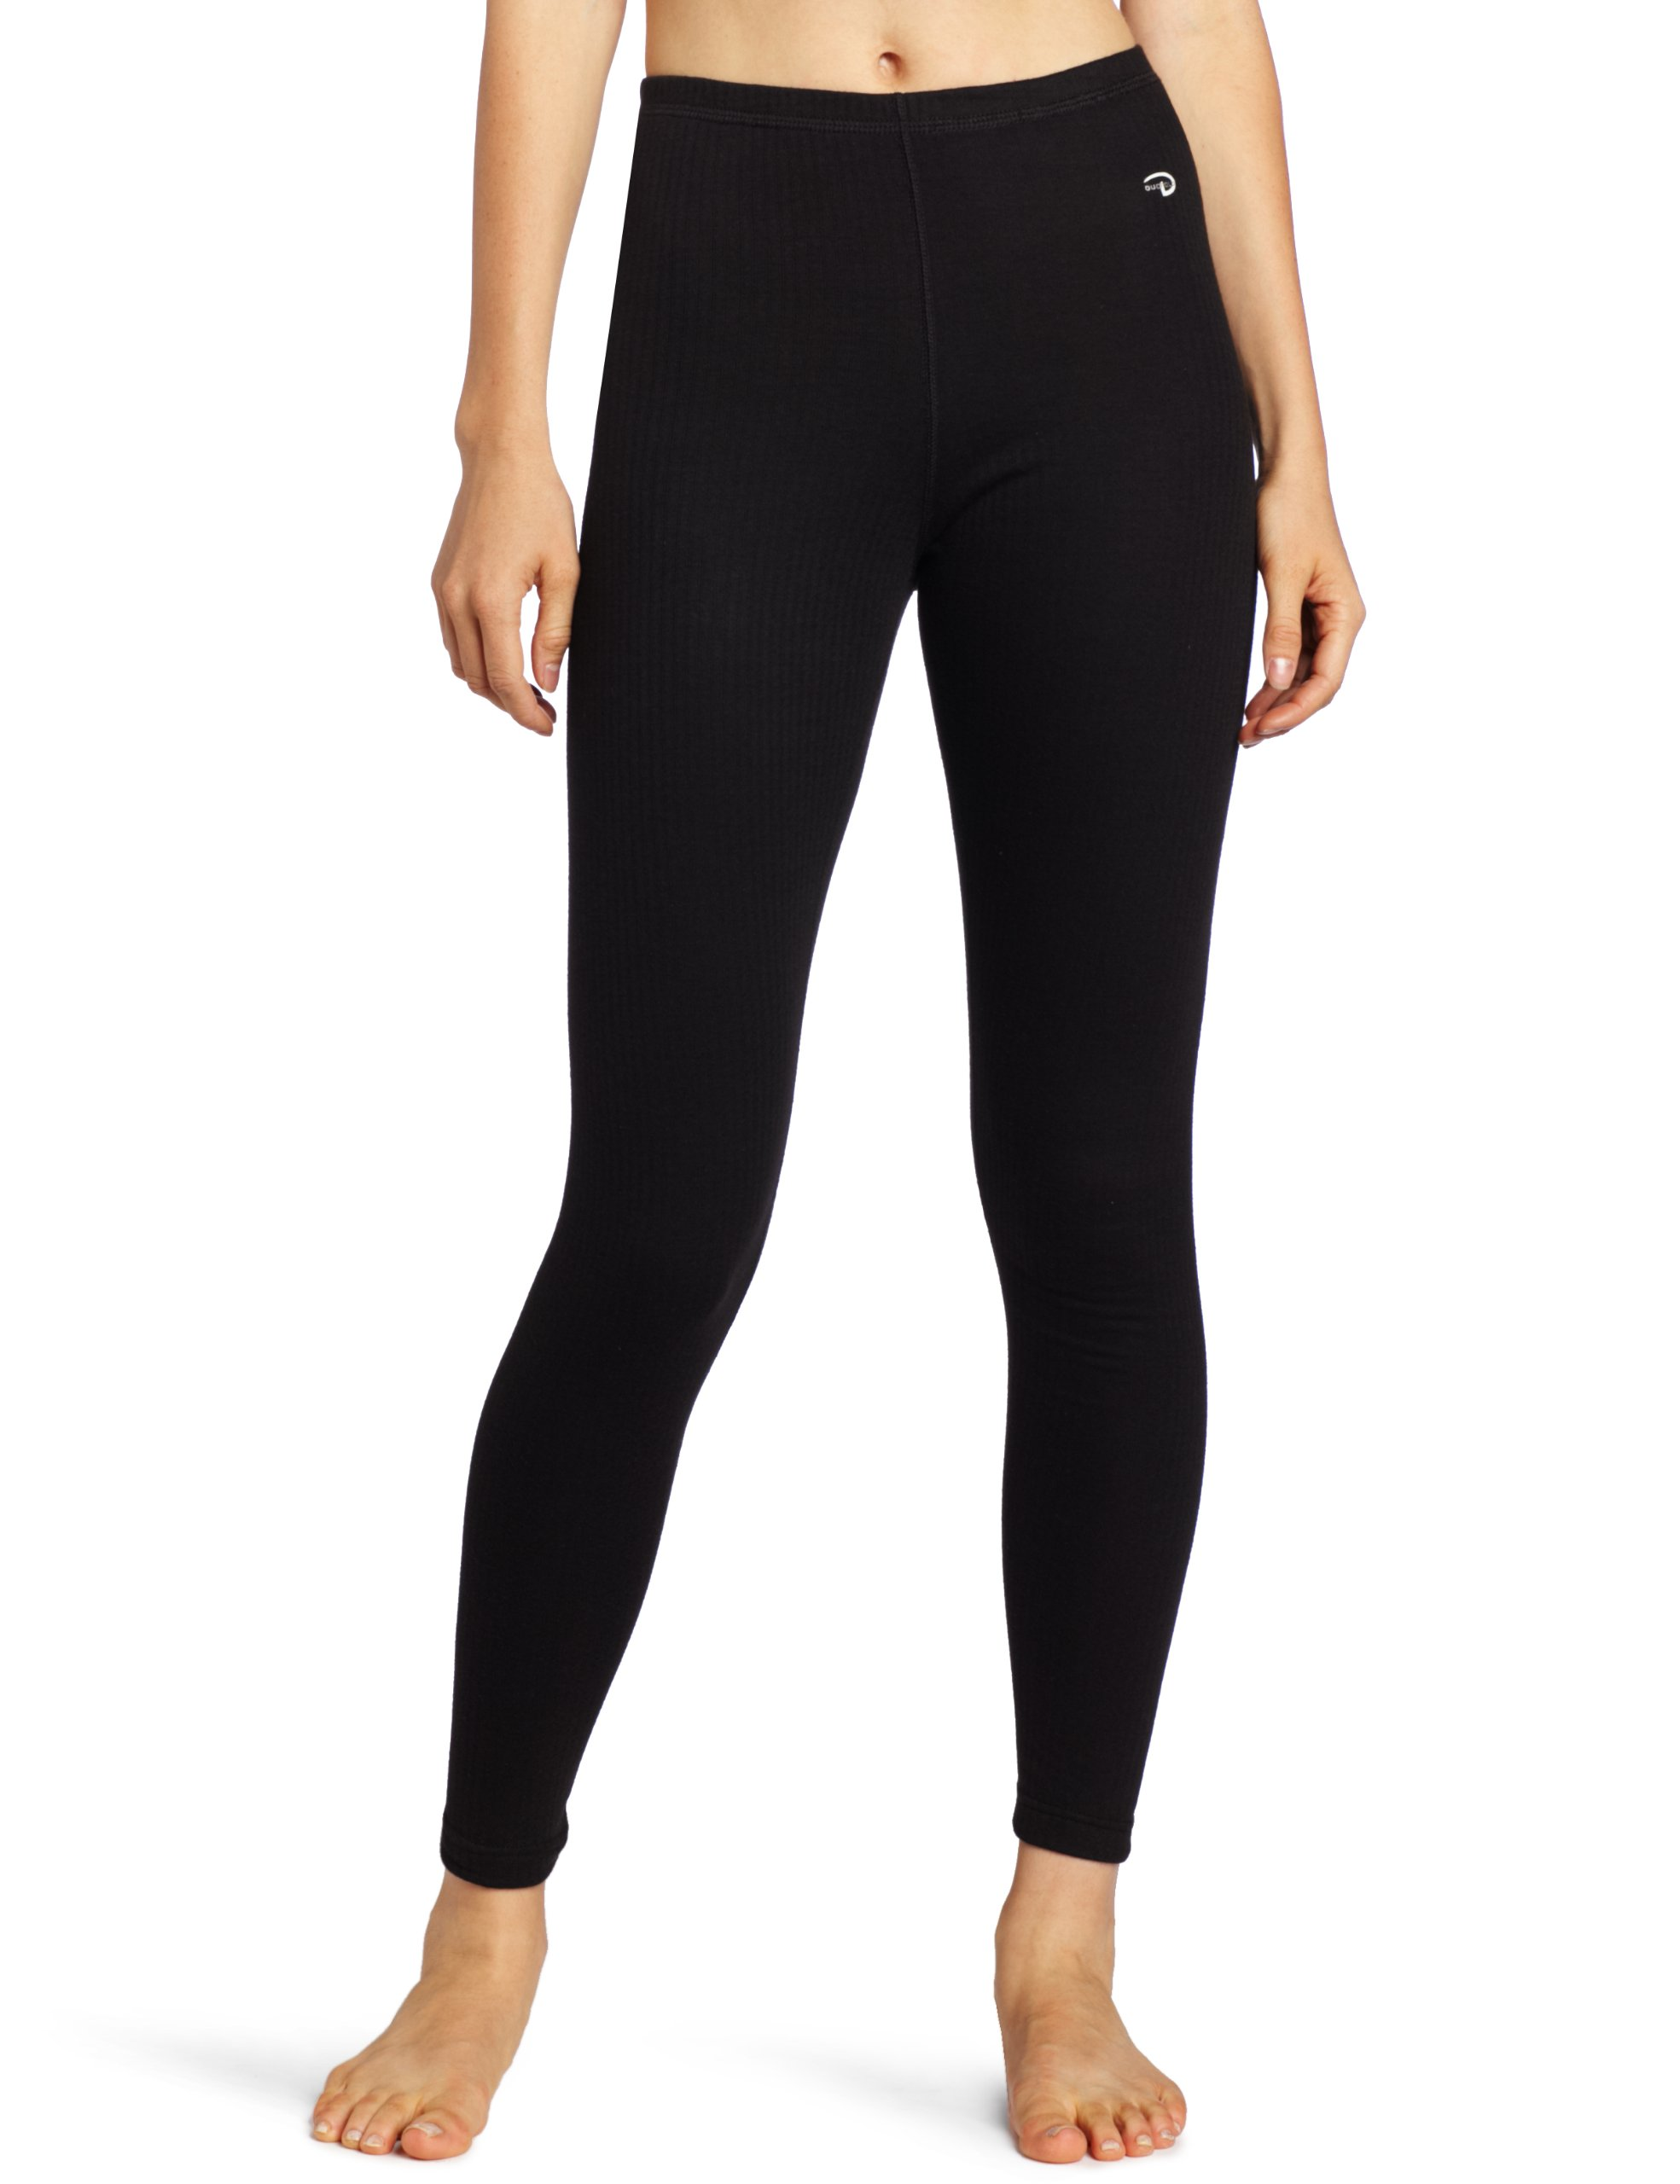 Duofold Women's Mid Weight Wicking Thermal Leggings, Black, X Large